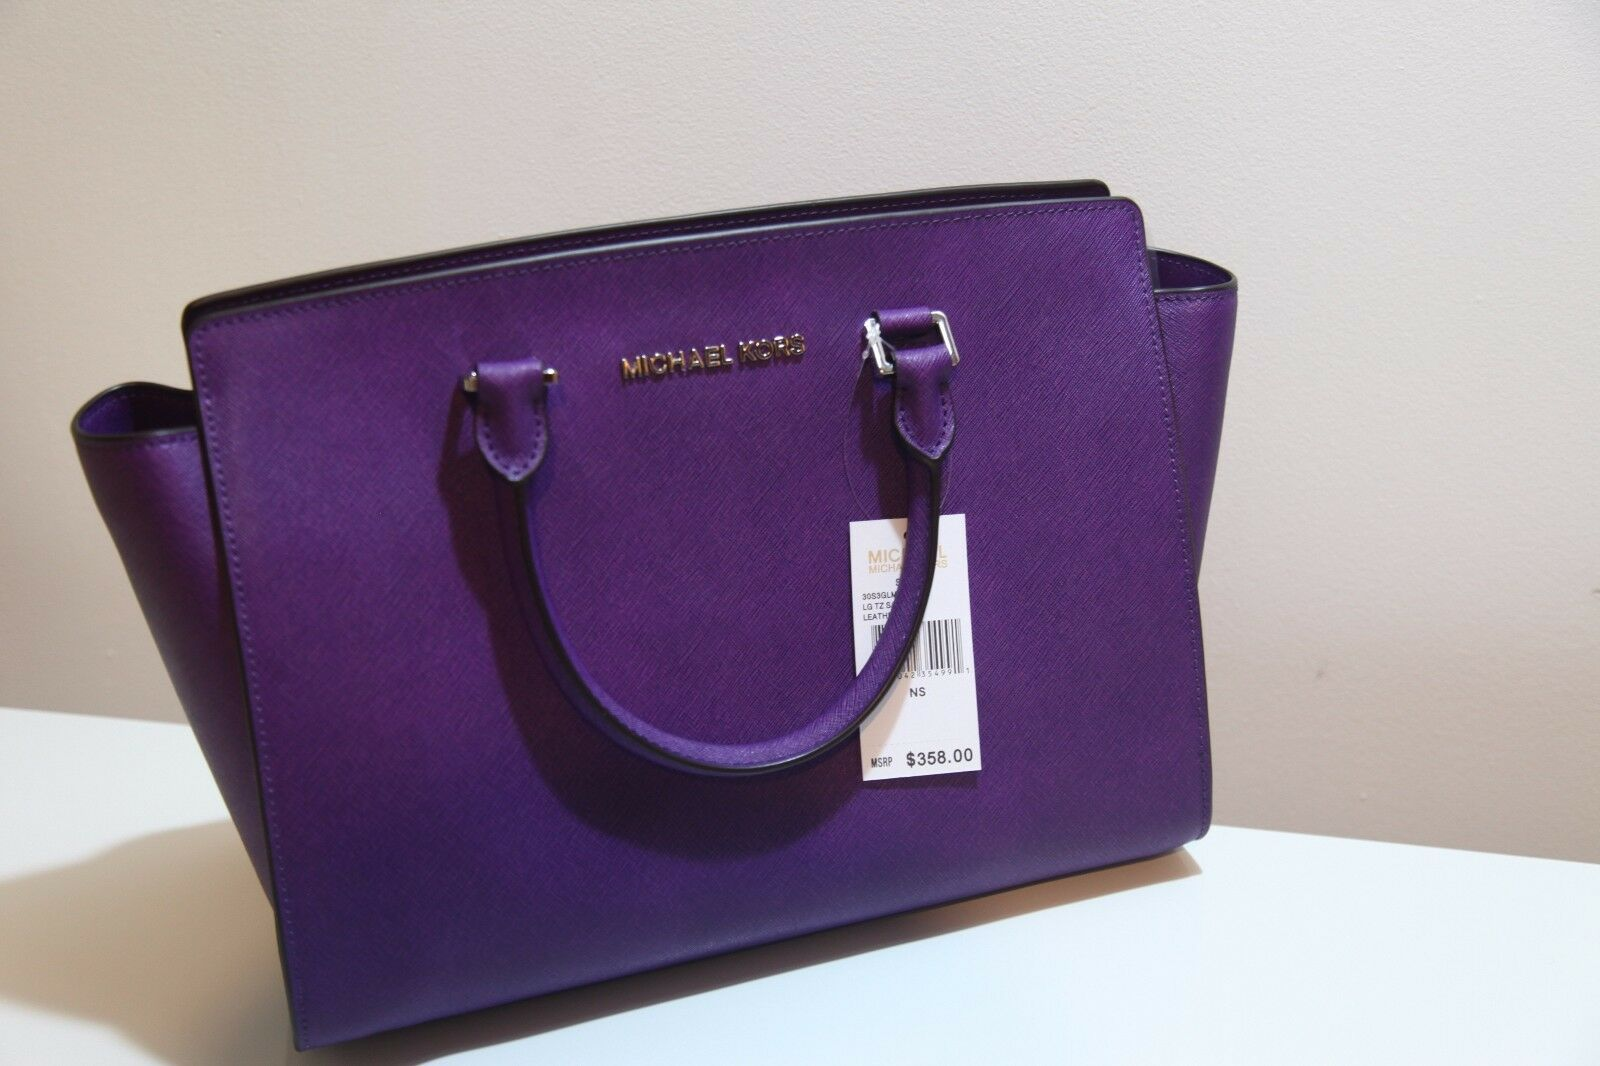 Michael Kors Selma Large Leather Saffiano Satchel - Price Tag,care Card, Qr Code